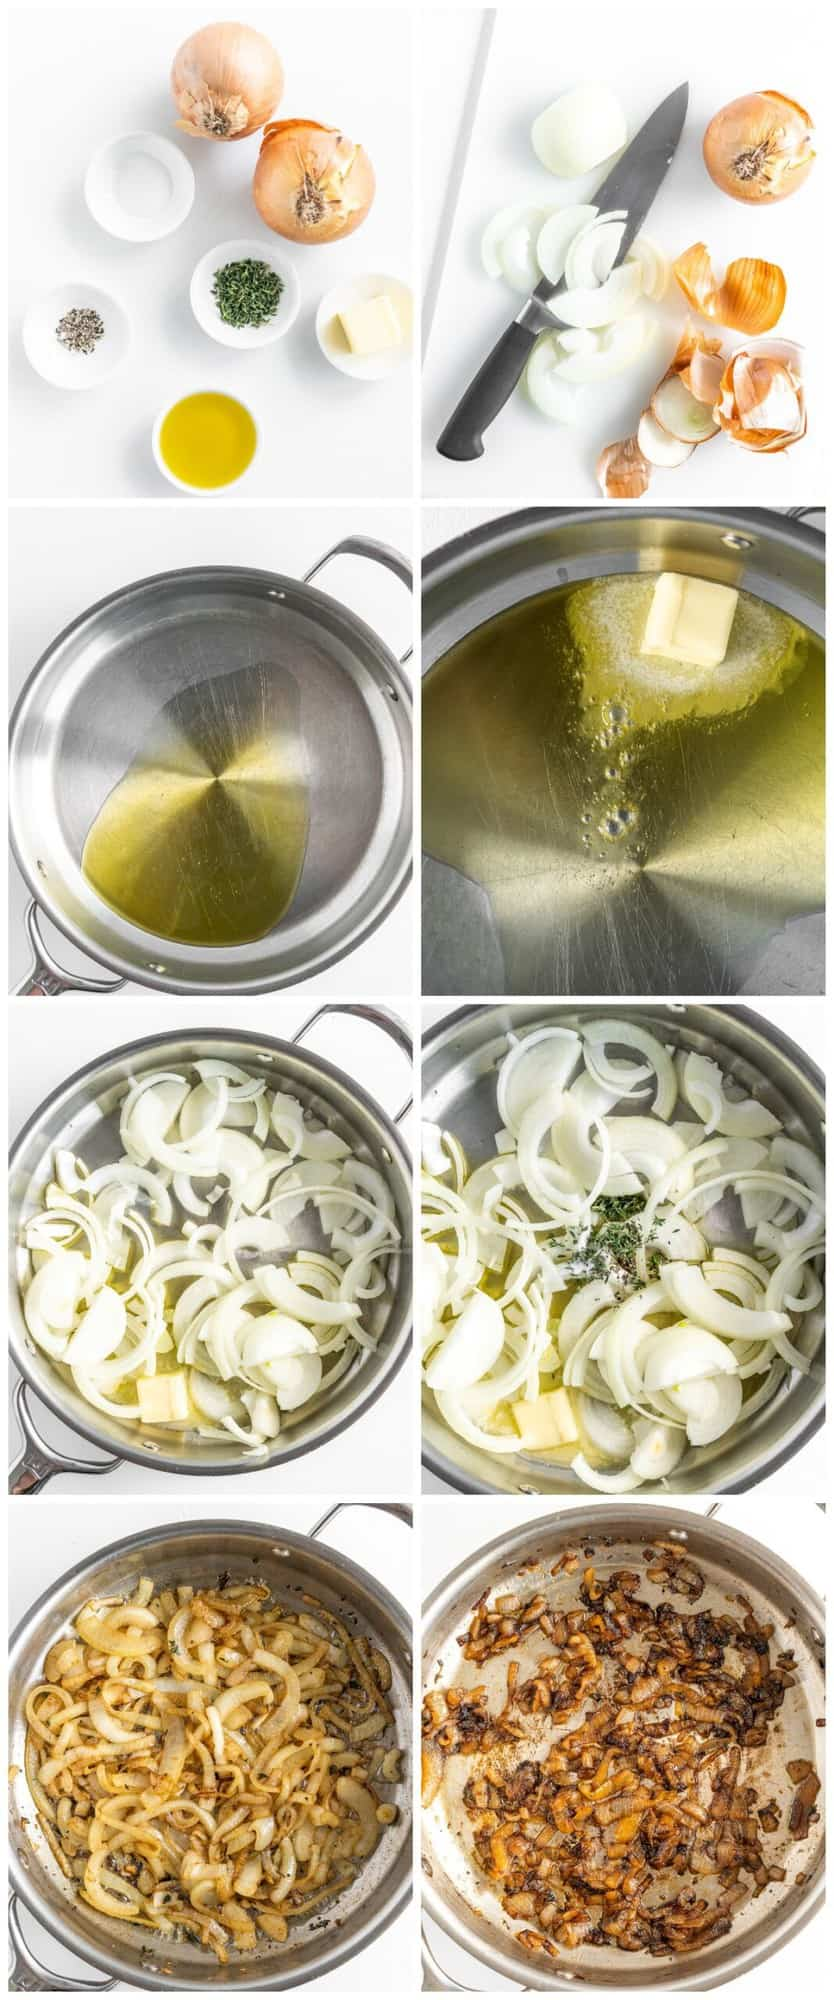 step by step photos for how to make caramelized onions